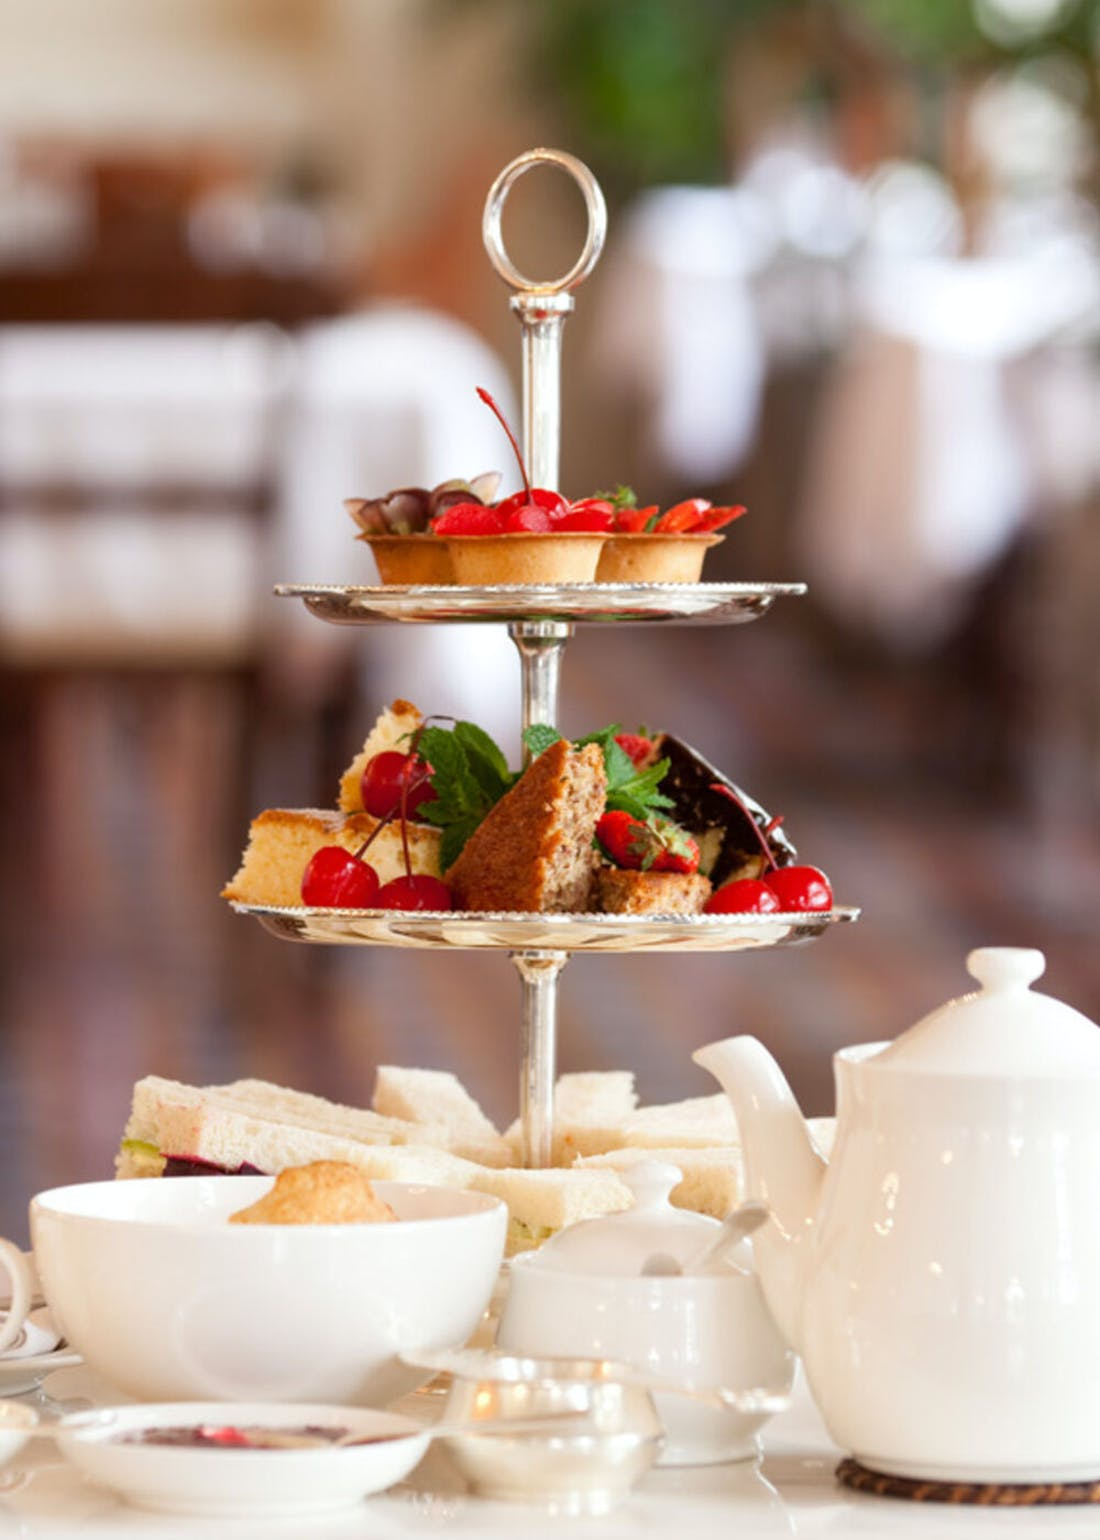 Virgin Experience Days Spa Retreat & Afternoon Tea for 2